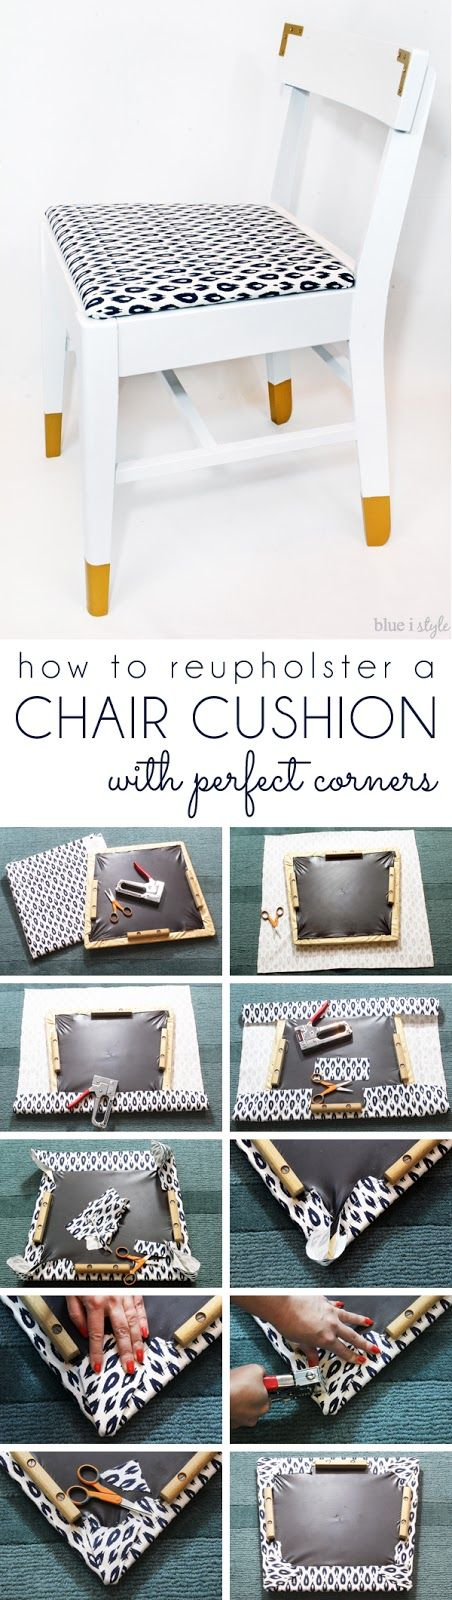 How To Upholster A Chair Cushion And Achieve Perfect Corners